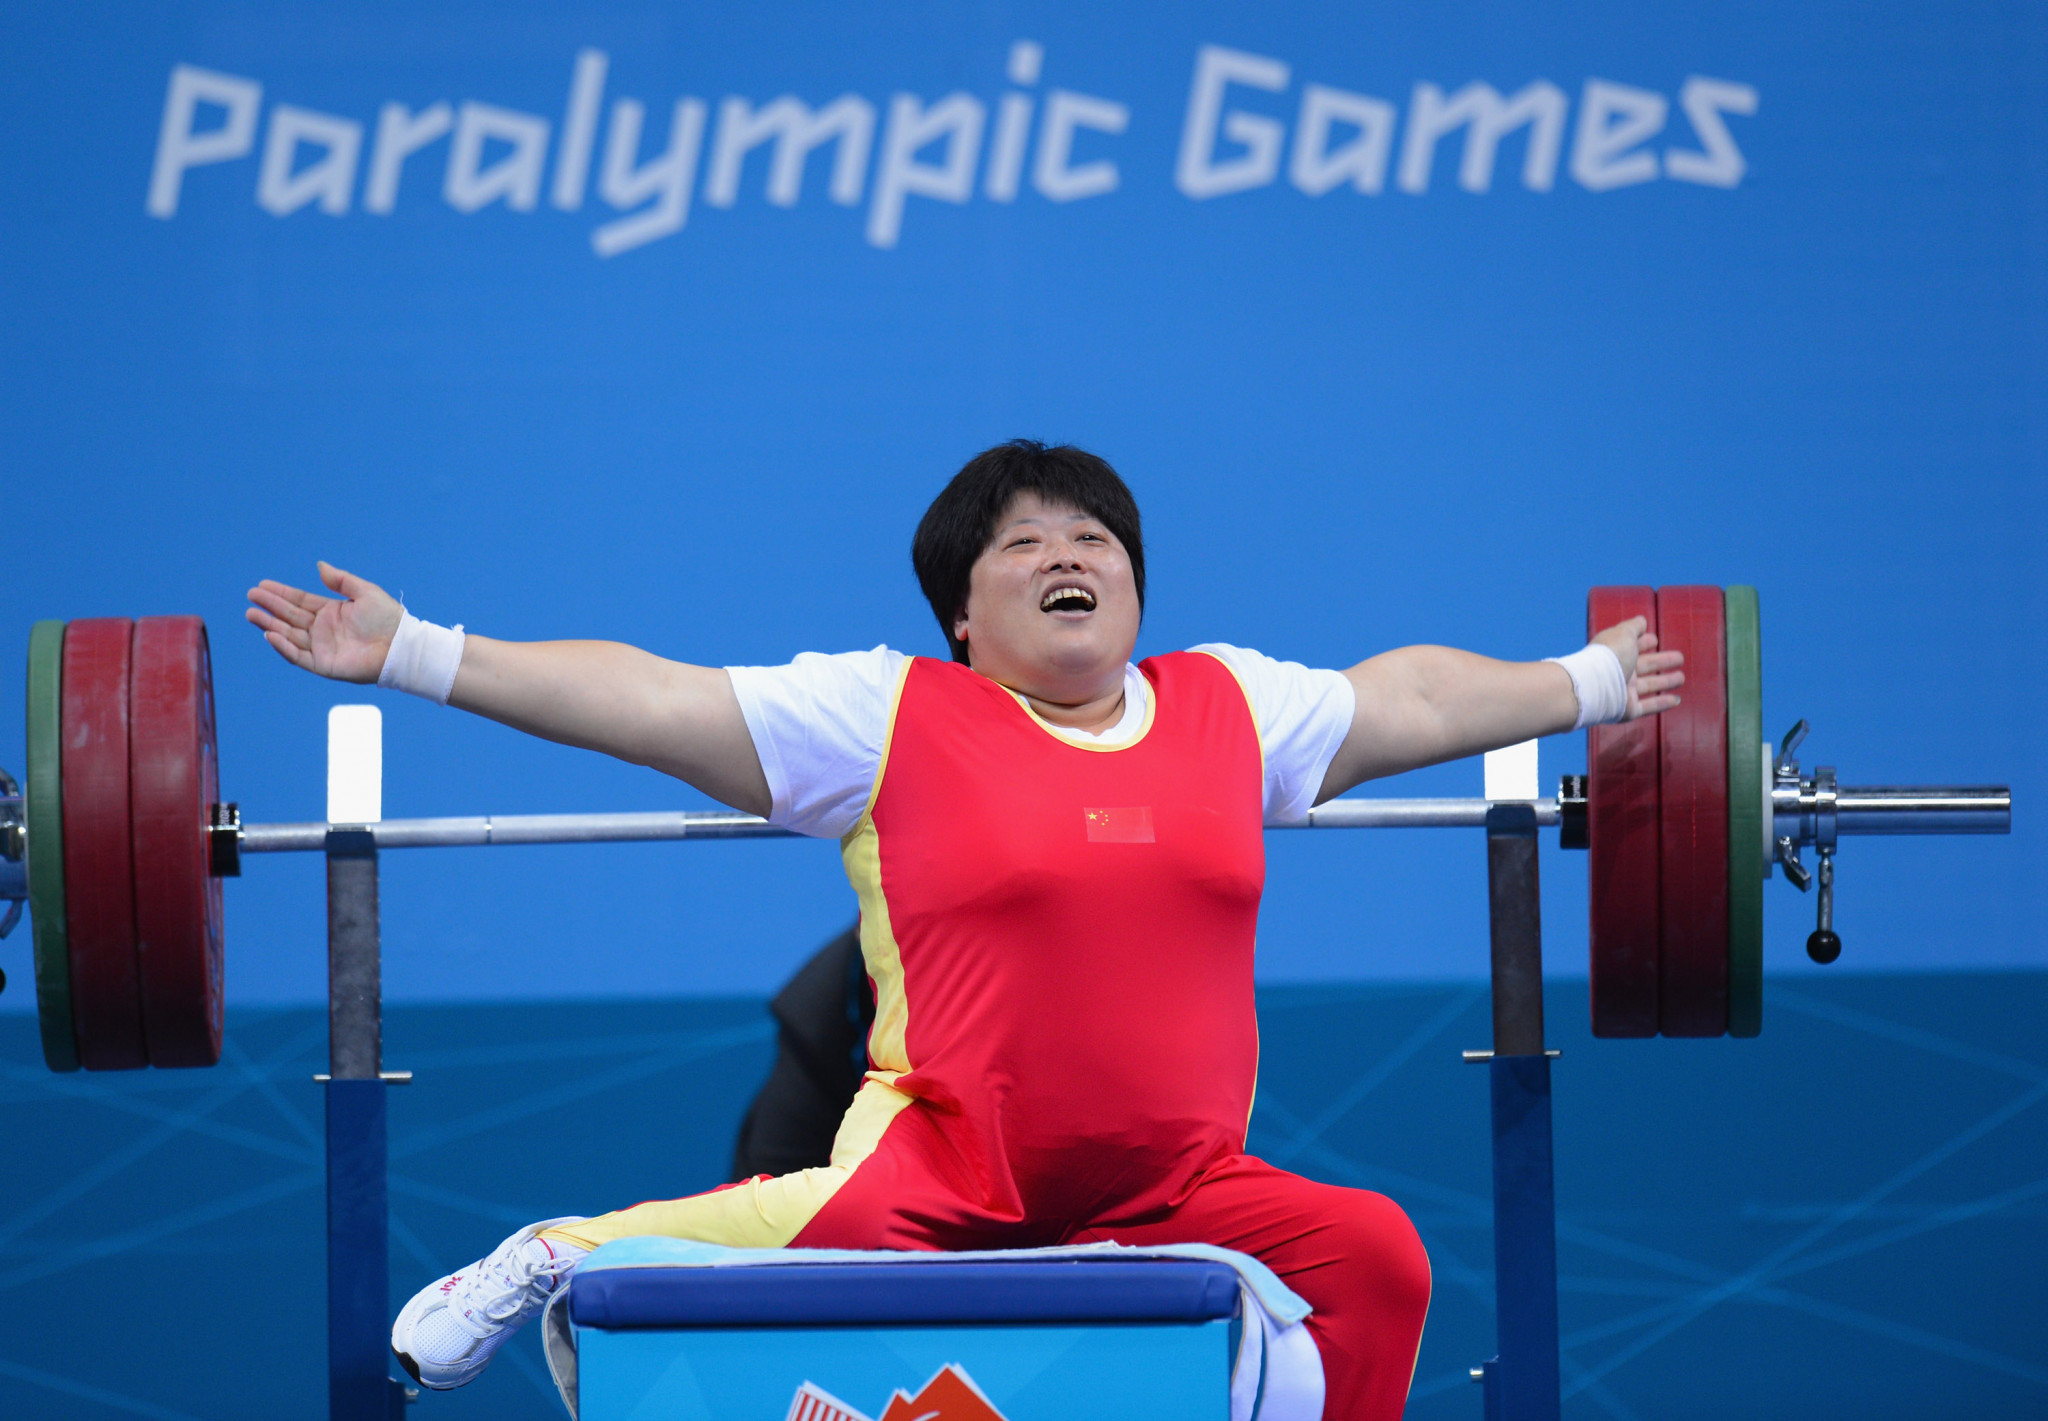 Double Paralympic powerlifting champion Lin given two-year doping ban